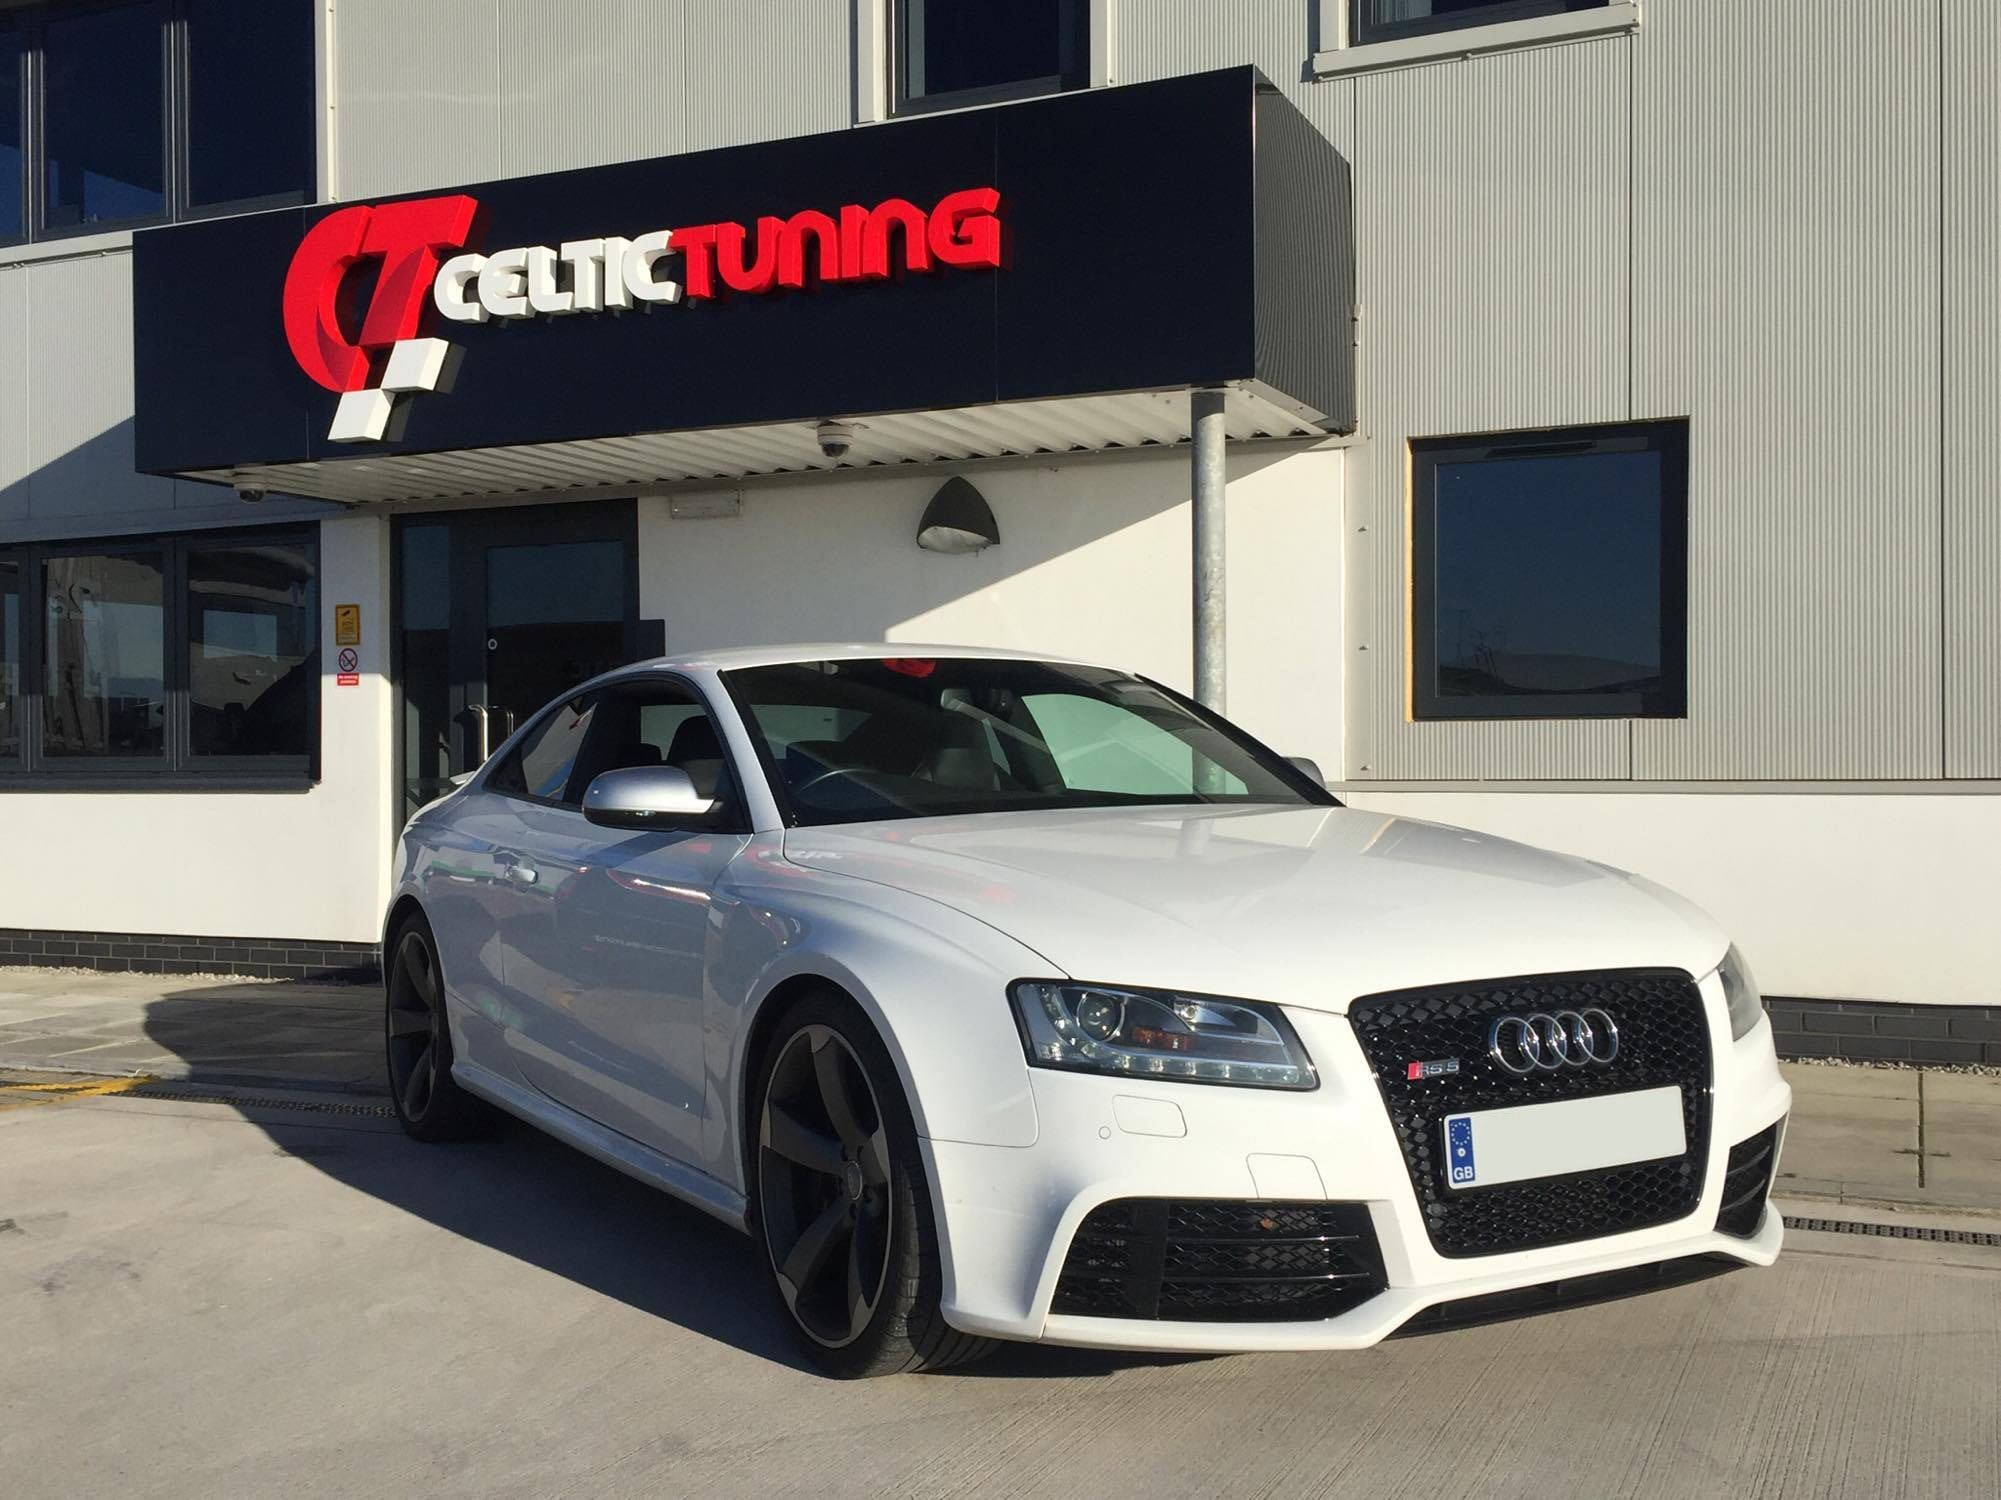 audi rs5 4 2v8 chip tuning. Black Bedroom Furniture Sets. Home Design Ideas